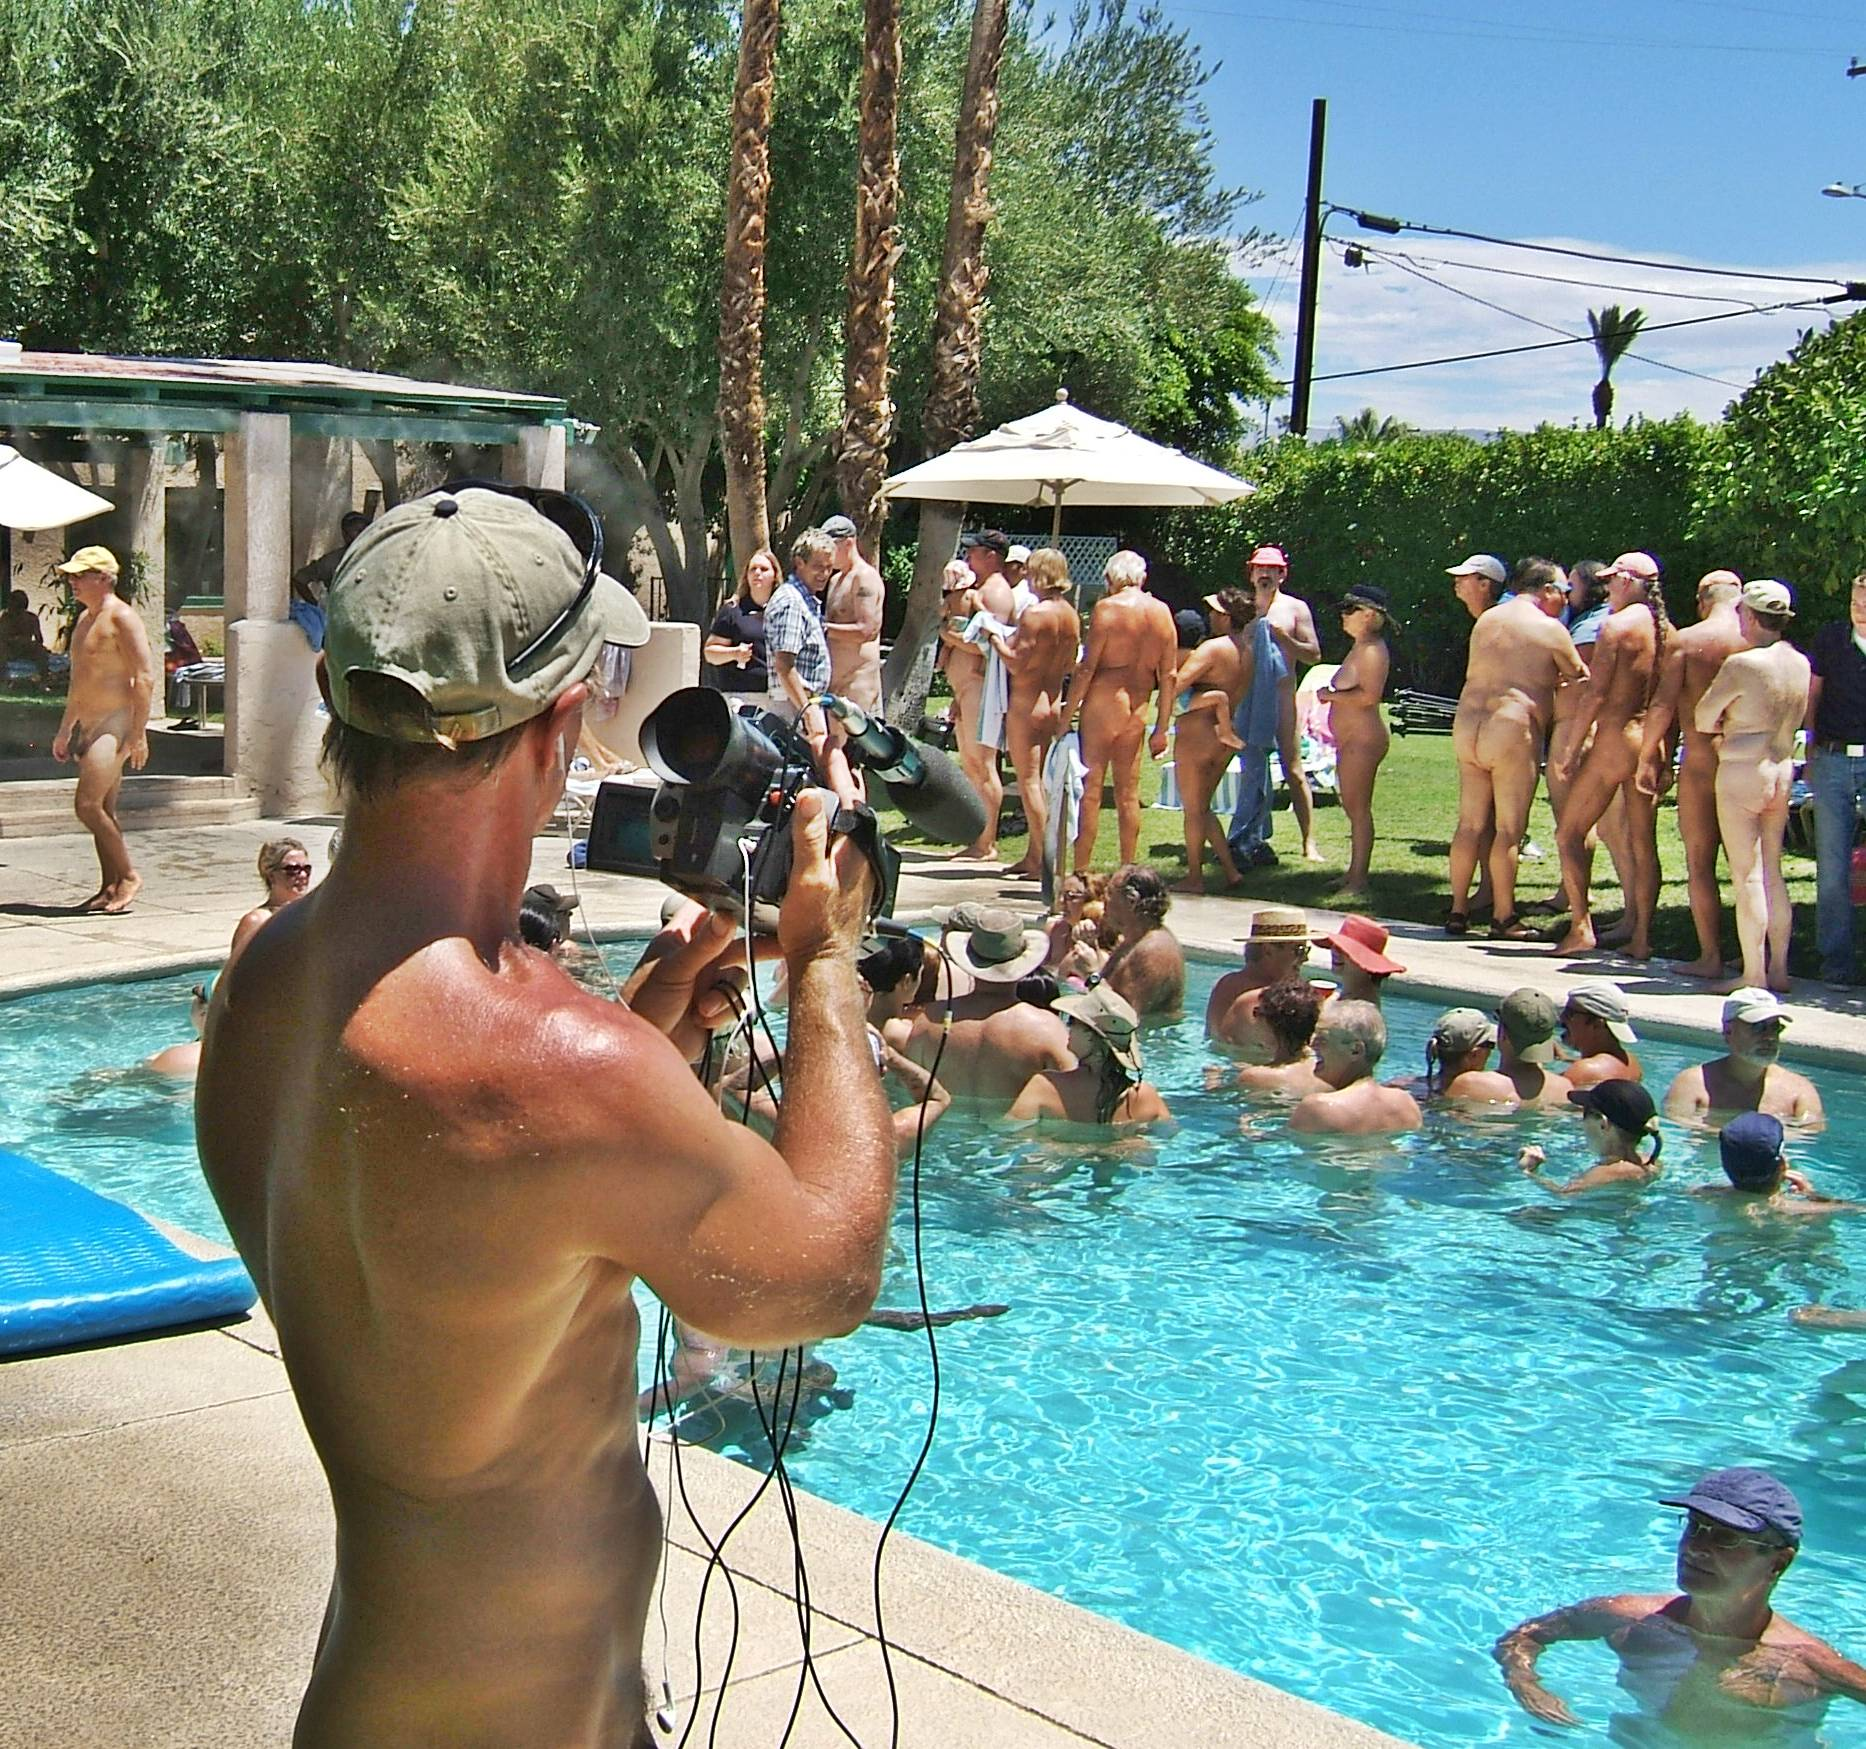 People Naked In The Pool